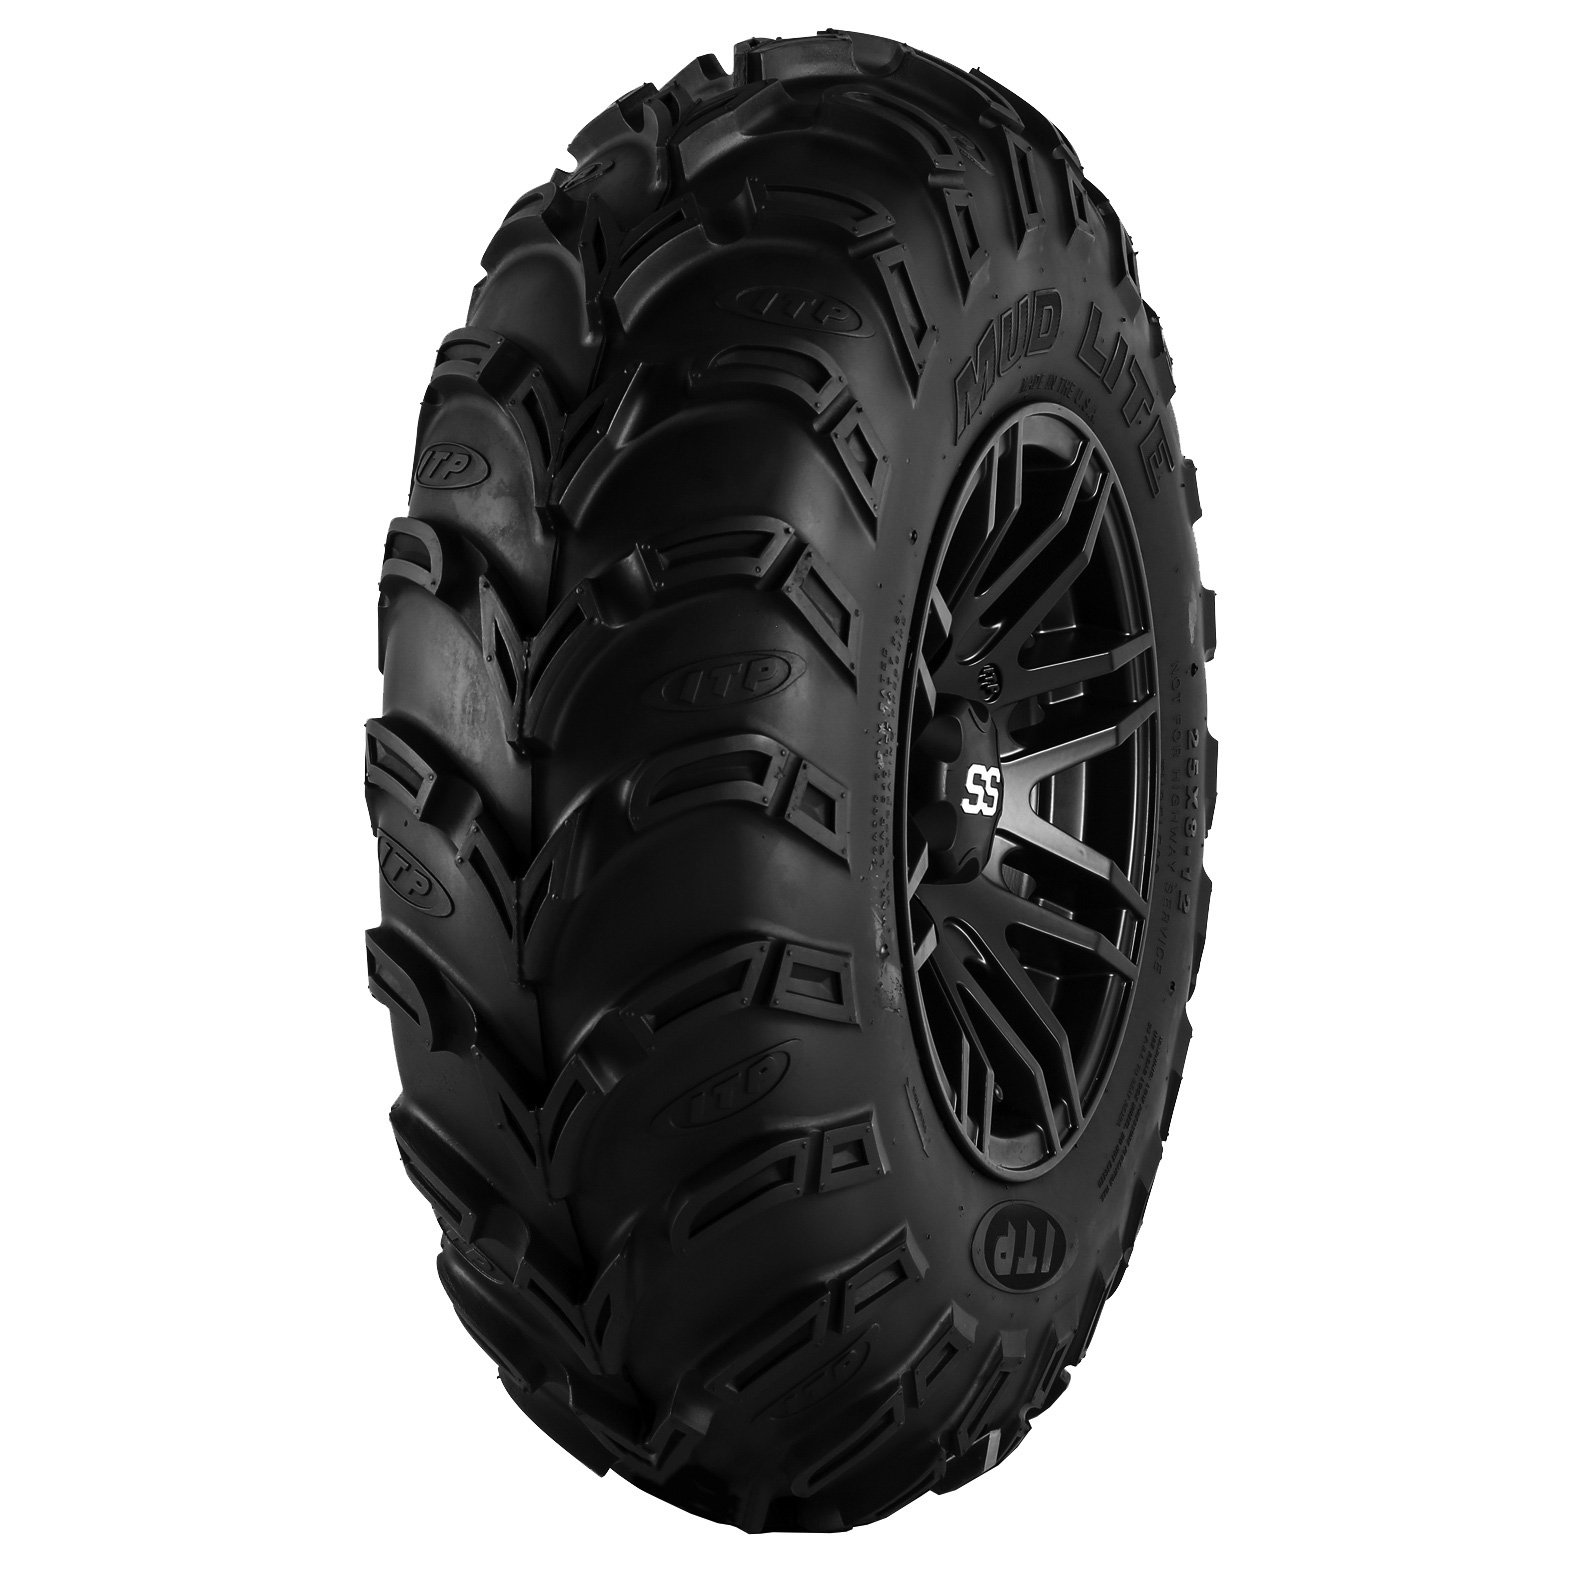 ITP Mud Lite AT ATV Tire - Angle